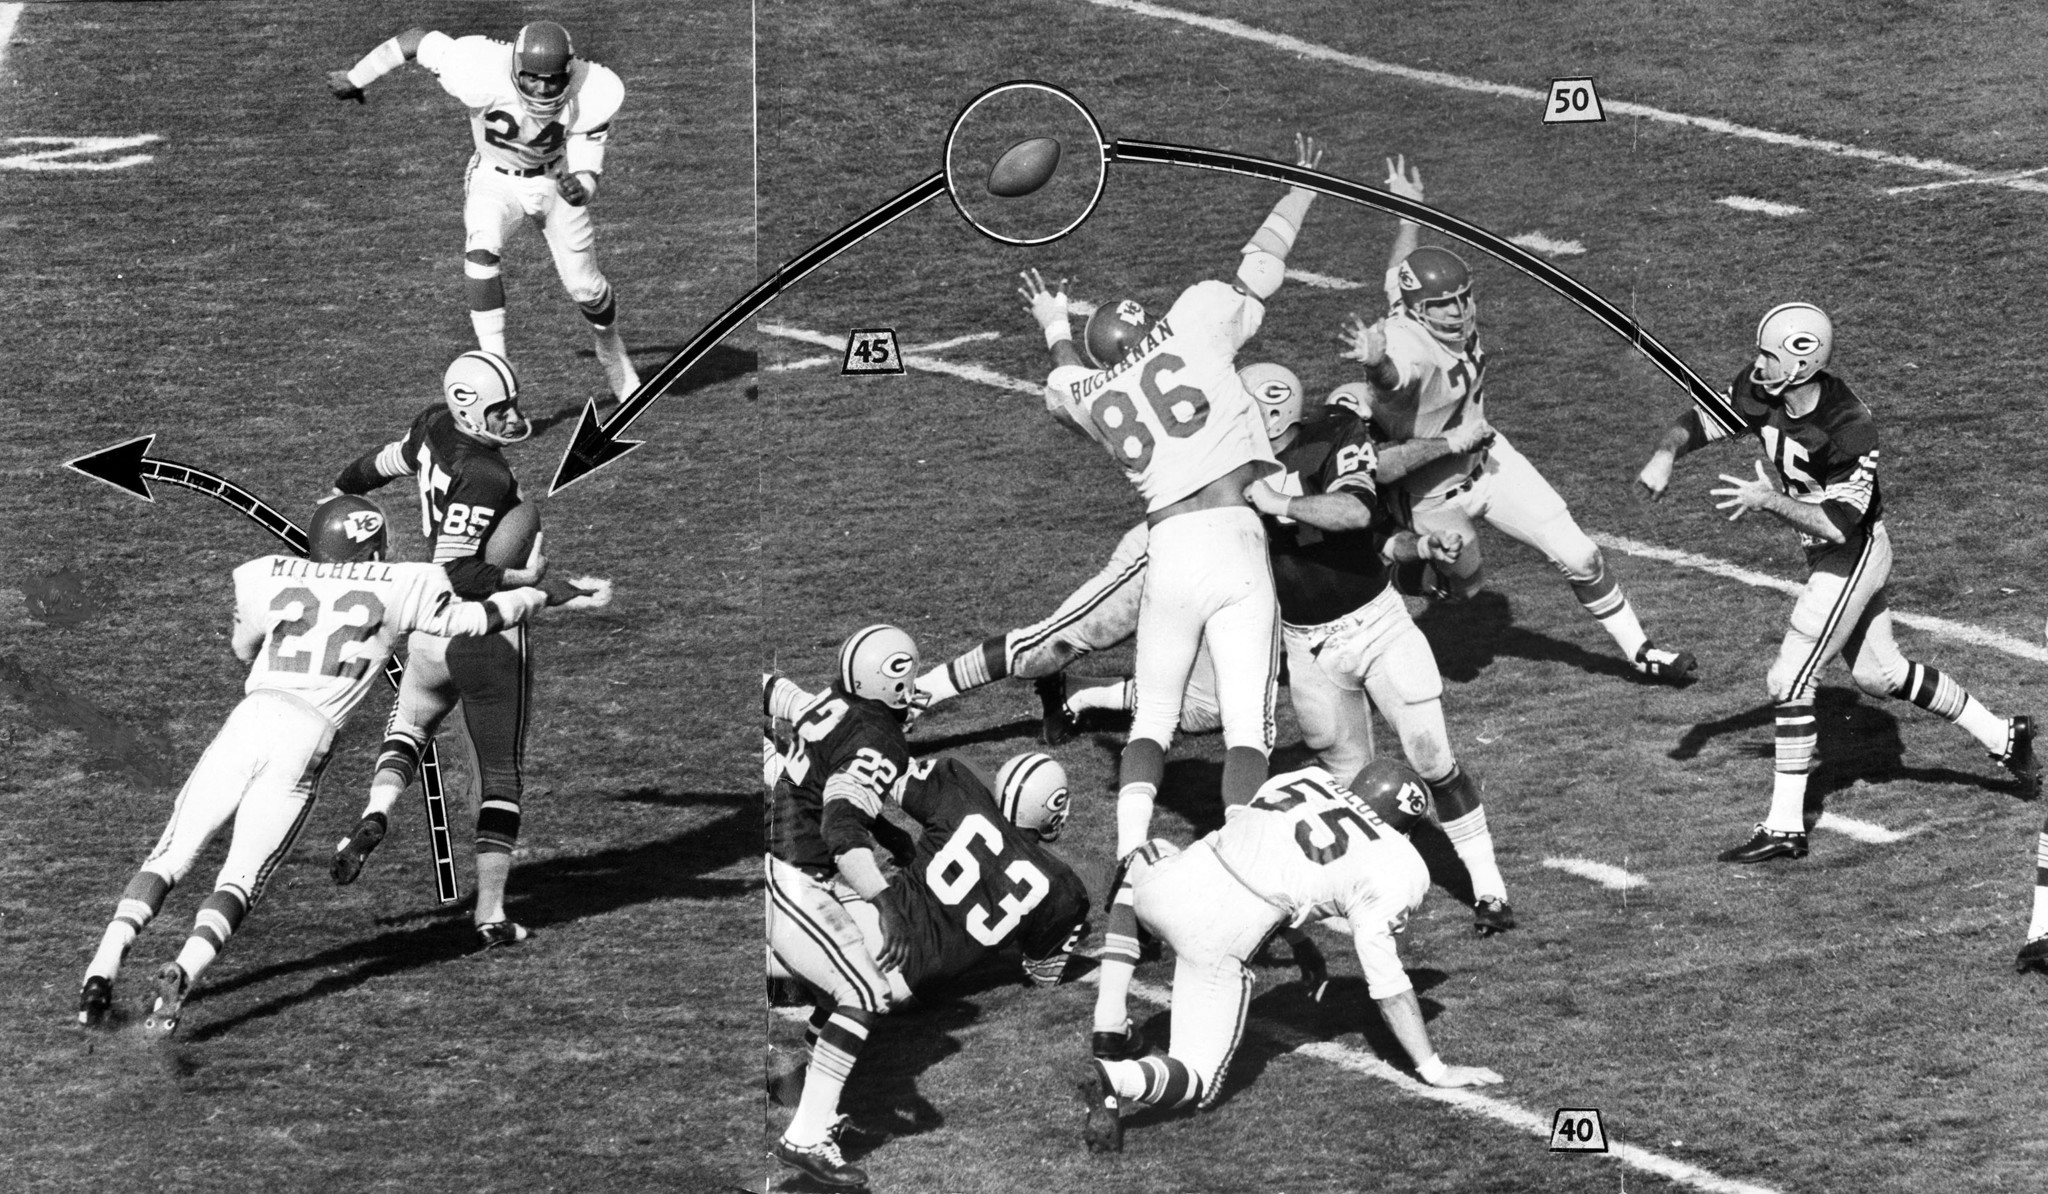 Jan. 15, 1967: Green Bay quarterback Bart Starr throws pass to Max McGee who made one handed catch a